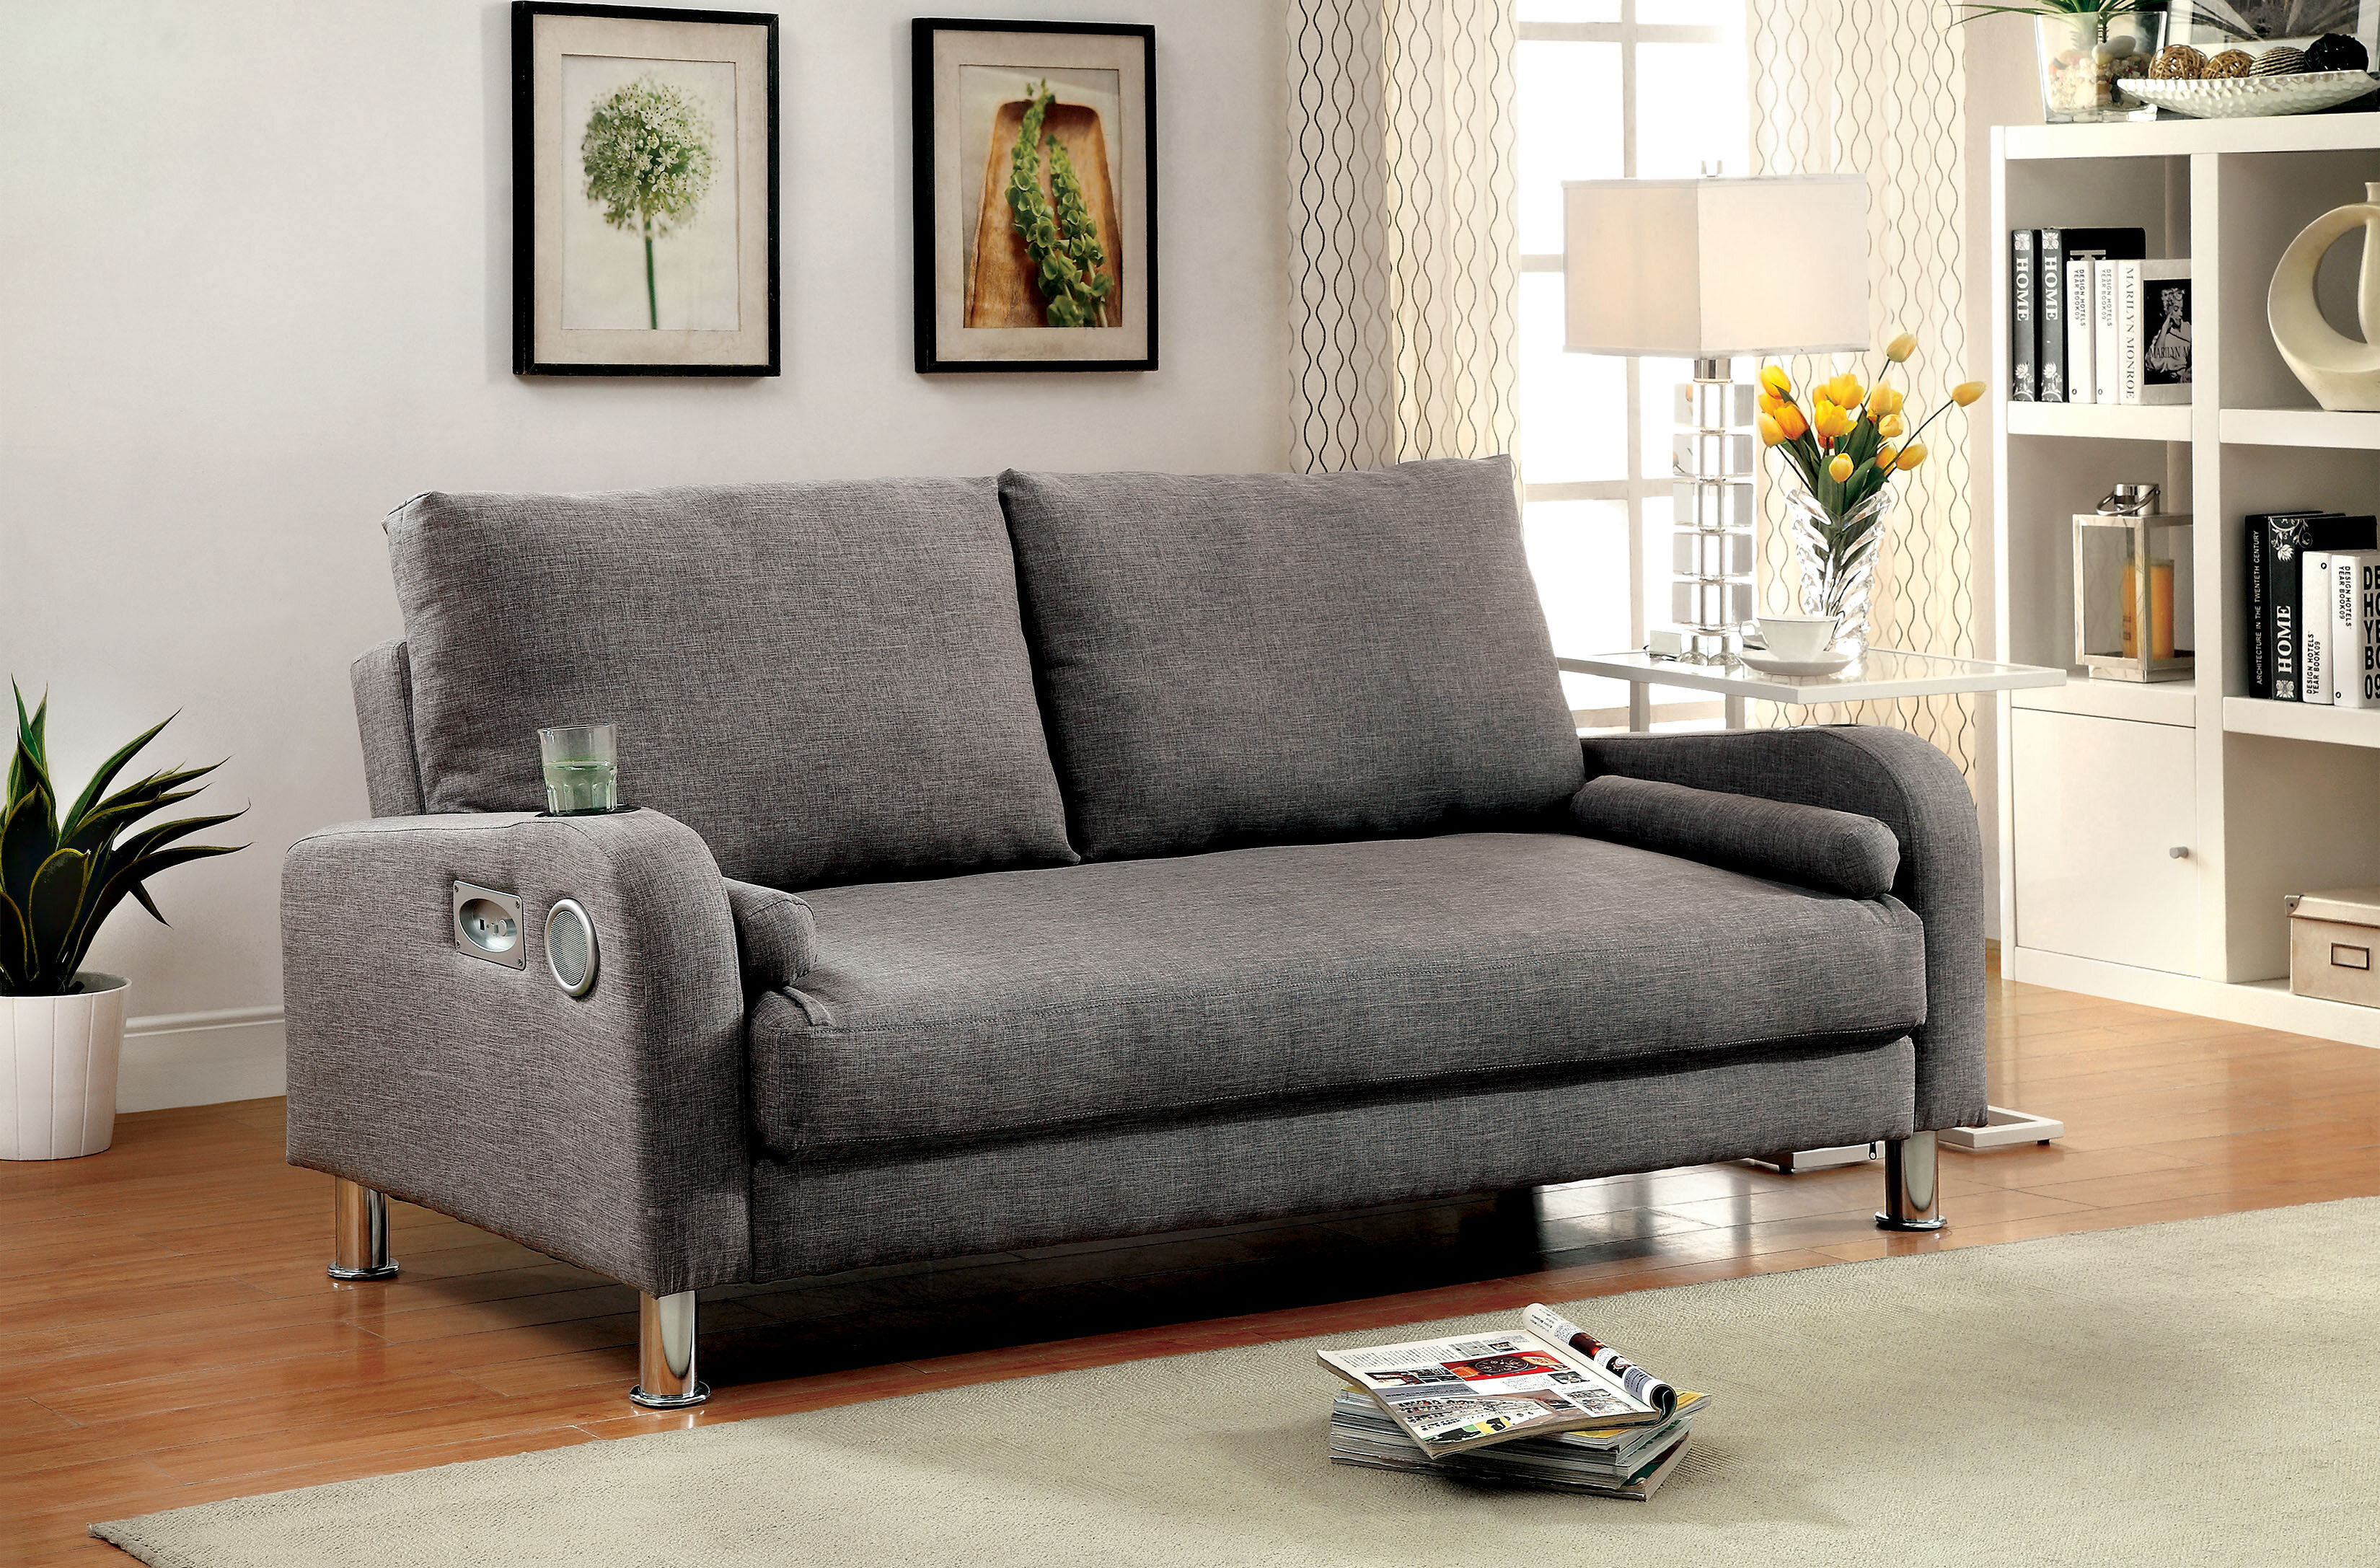 is new sofa beautiful fortable best futon rated beds top size home of couch luxury stylish sale living what full design bed futons walmart ideas and room